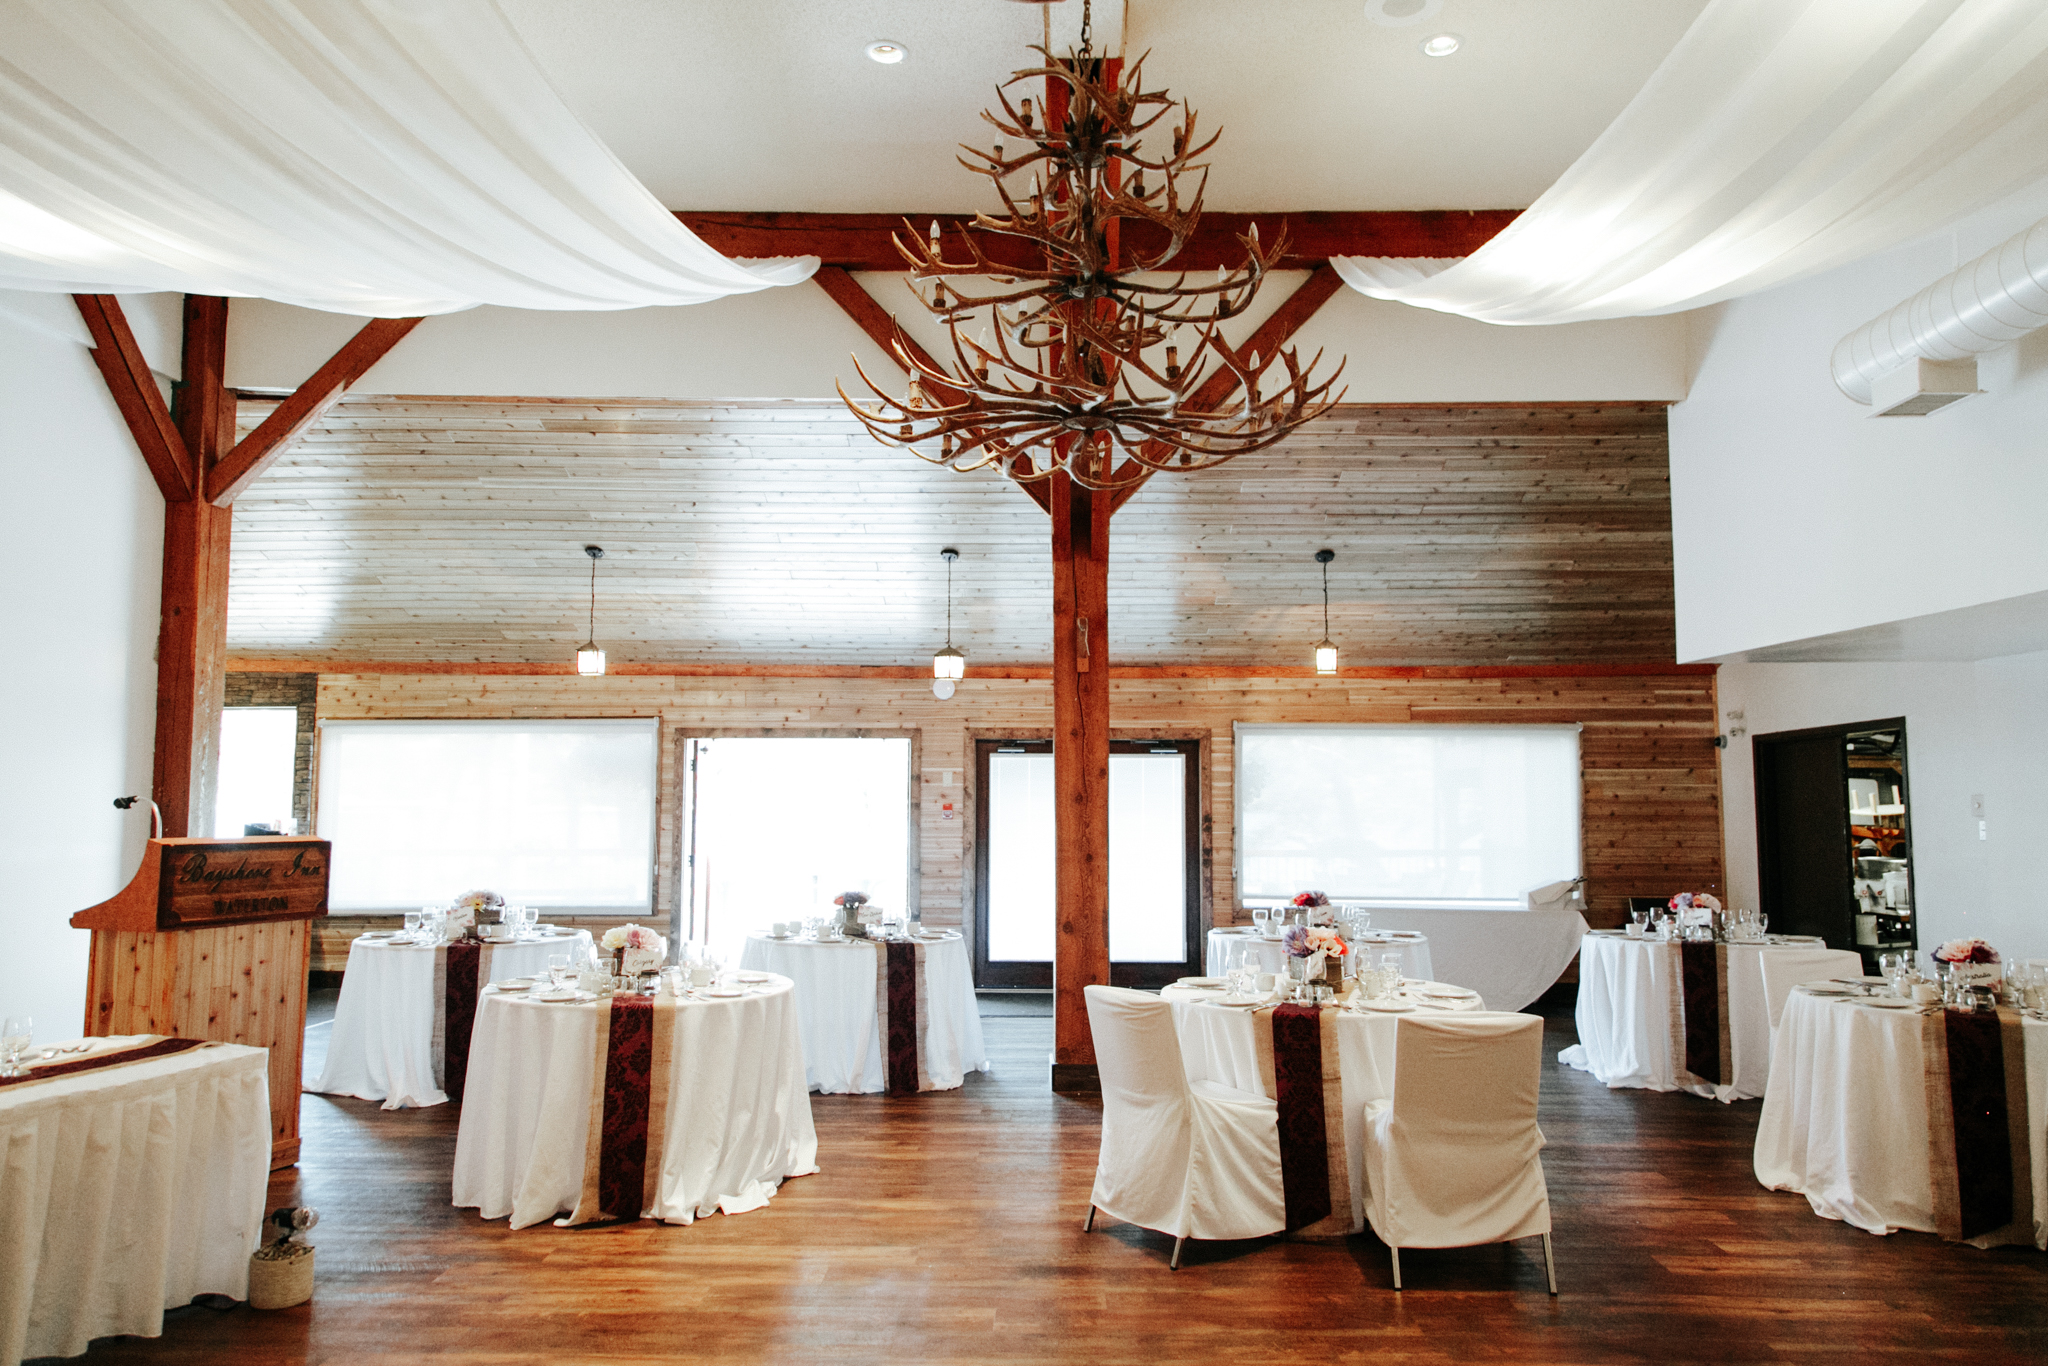 waterton-wedding-photography-love-and-be-loved-photographer-bayshore-inn-reception-image-photo-picture-1.jpg